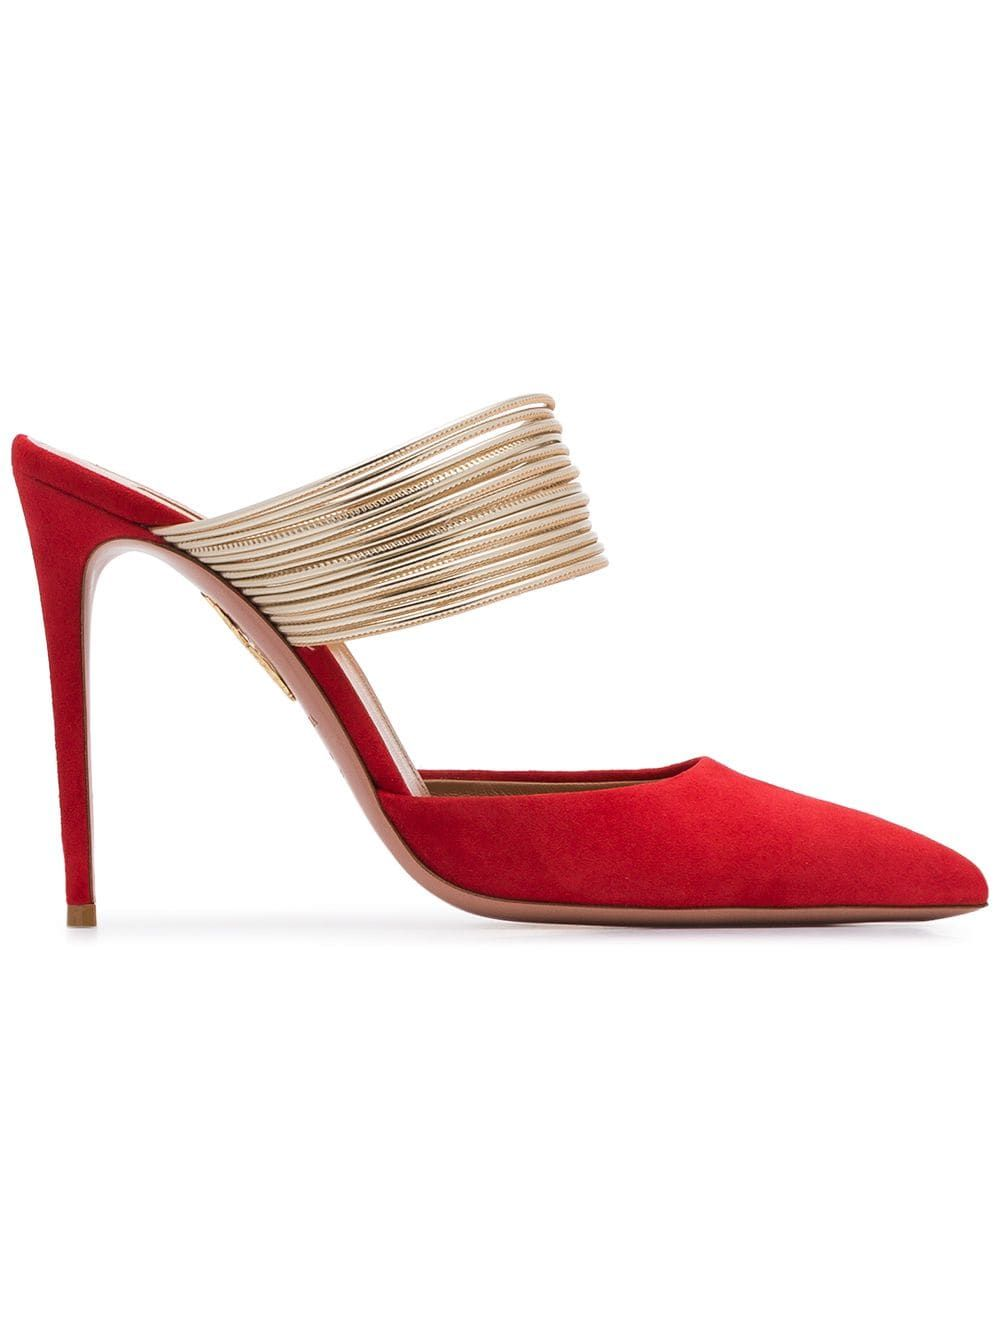 655e4831547 Aquazzura red new rendezvous 105 suede leather mules in 2019 ...